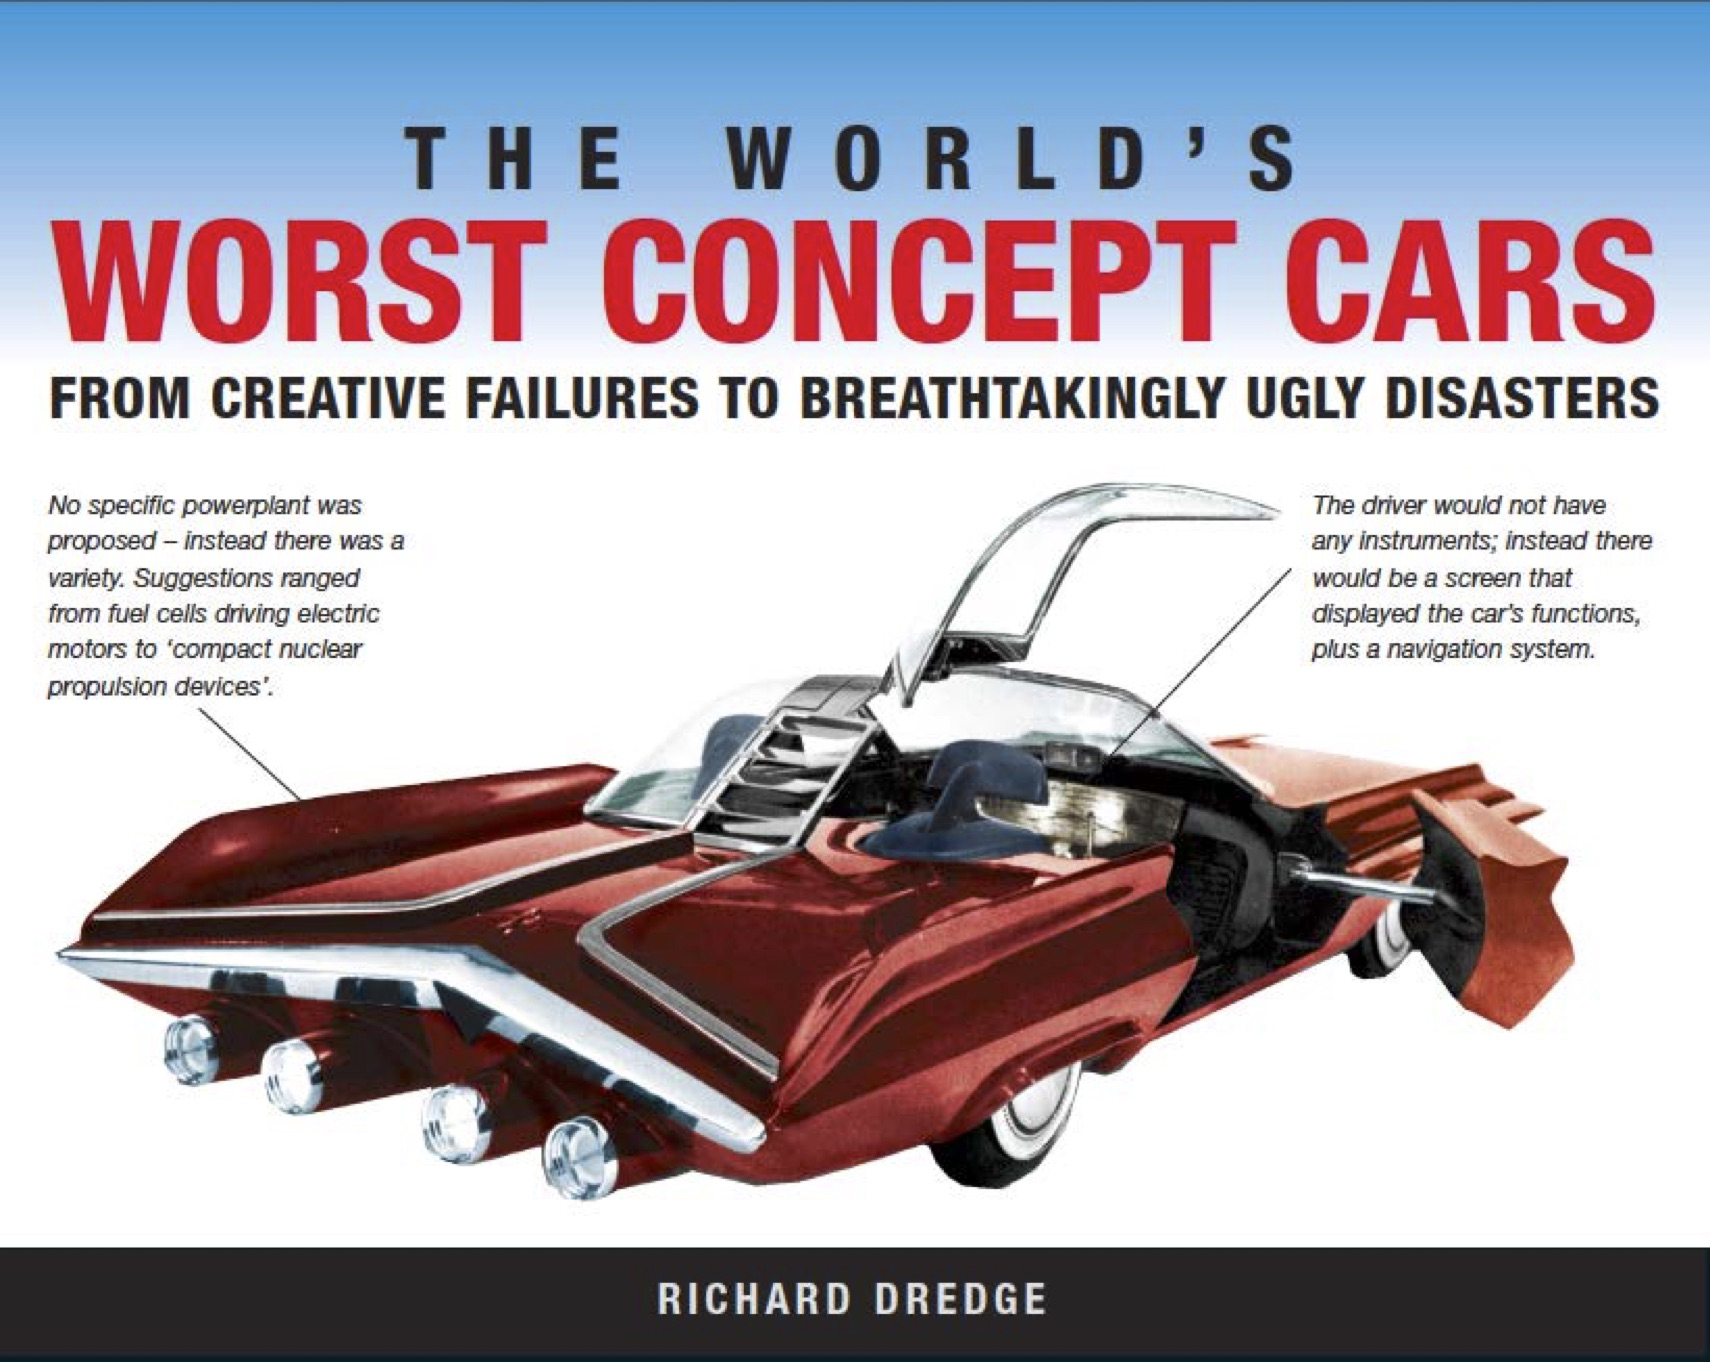 The World's Worst Concept Cars